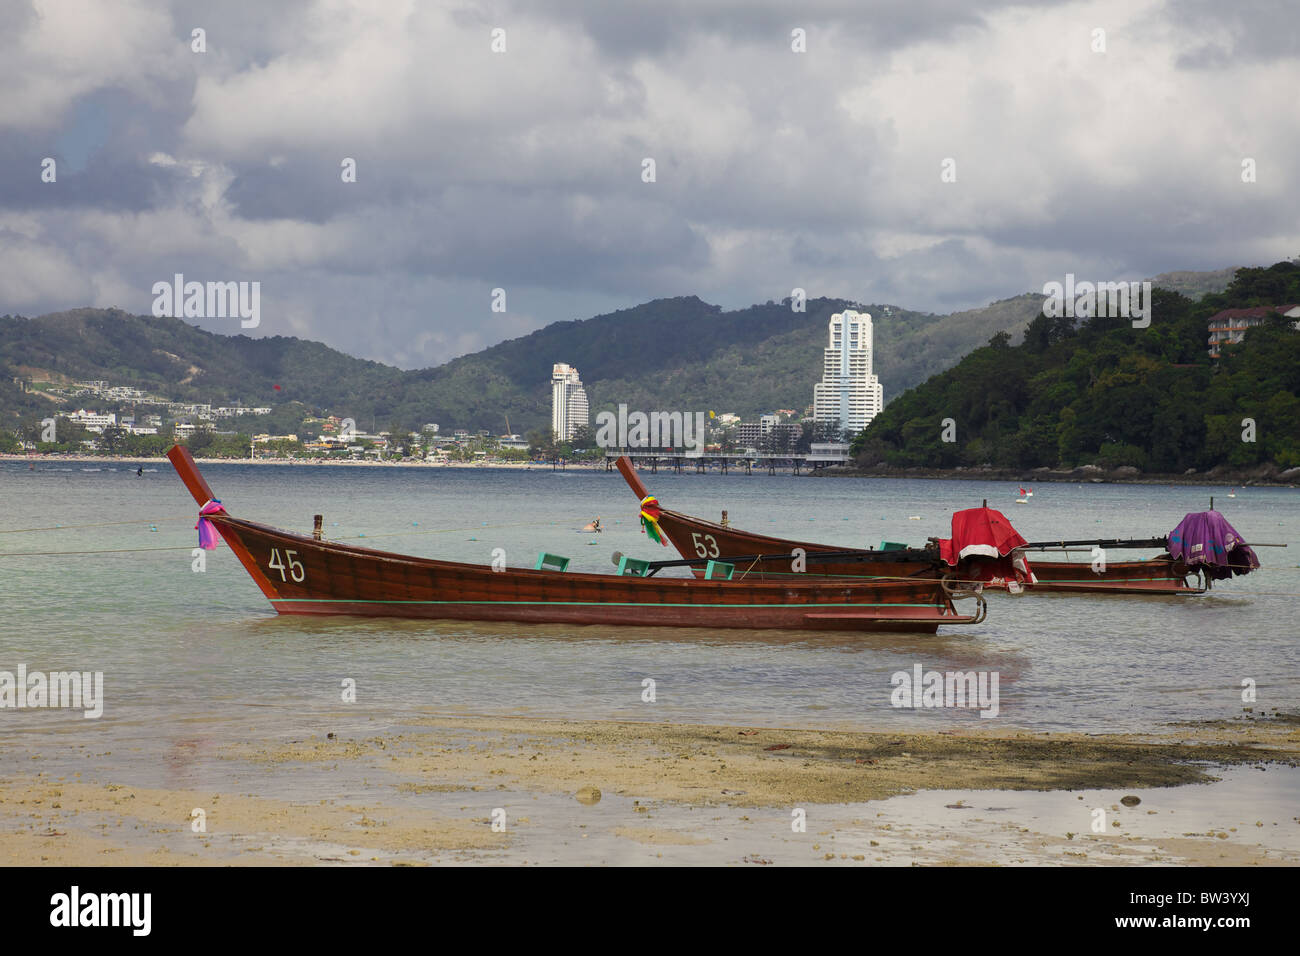 Long tail boats with Patong beach in the background, Phuket, Thailand - Stock Image